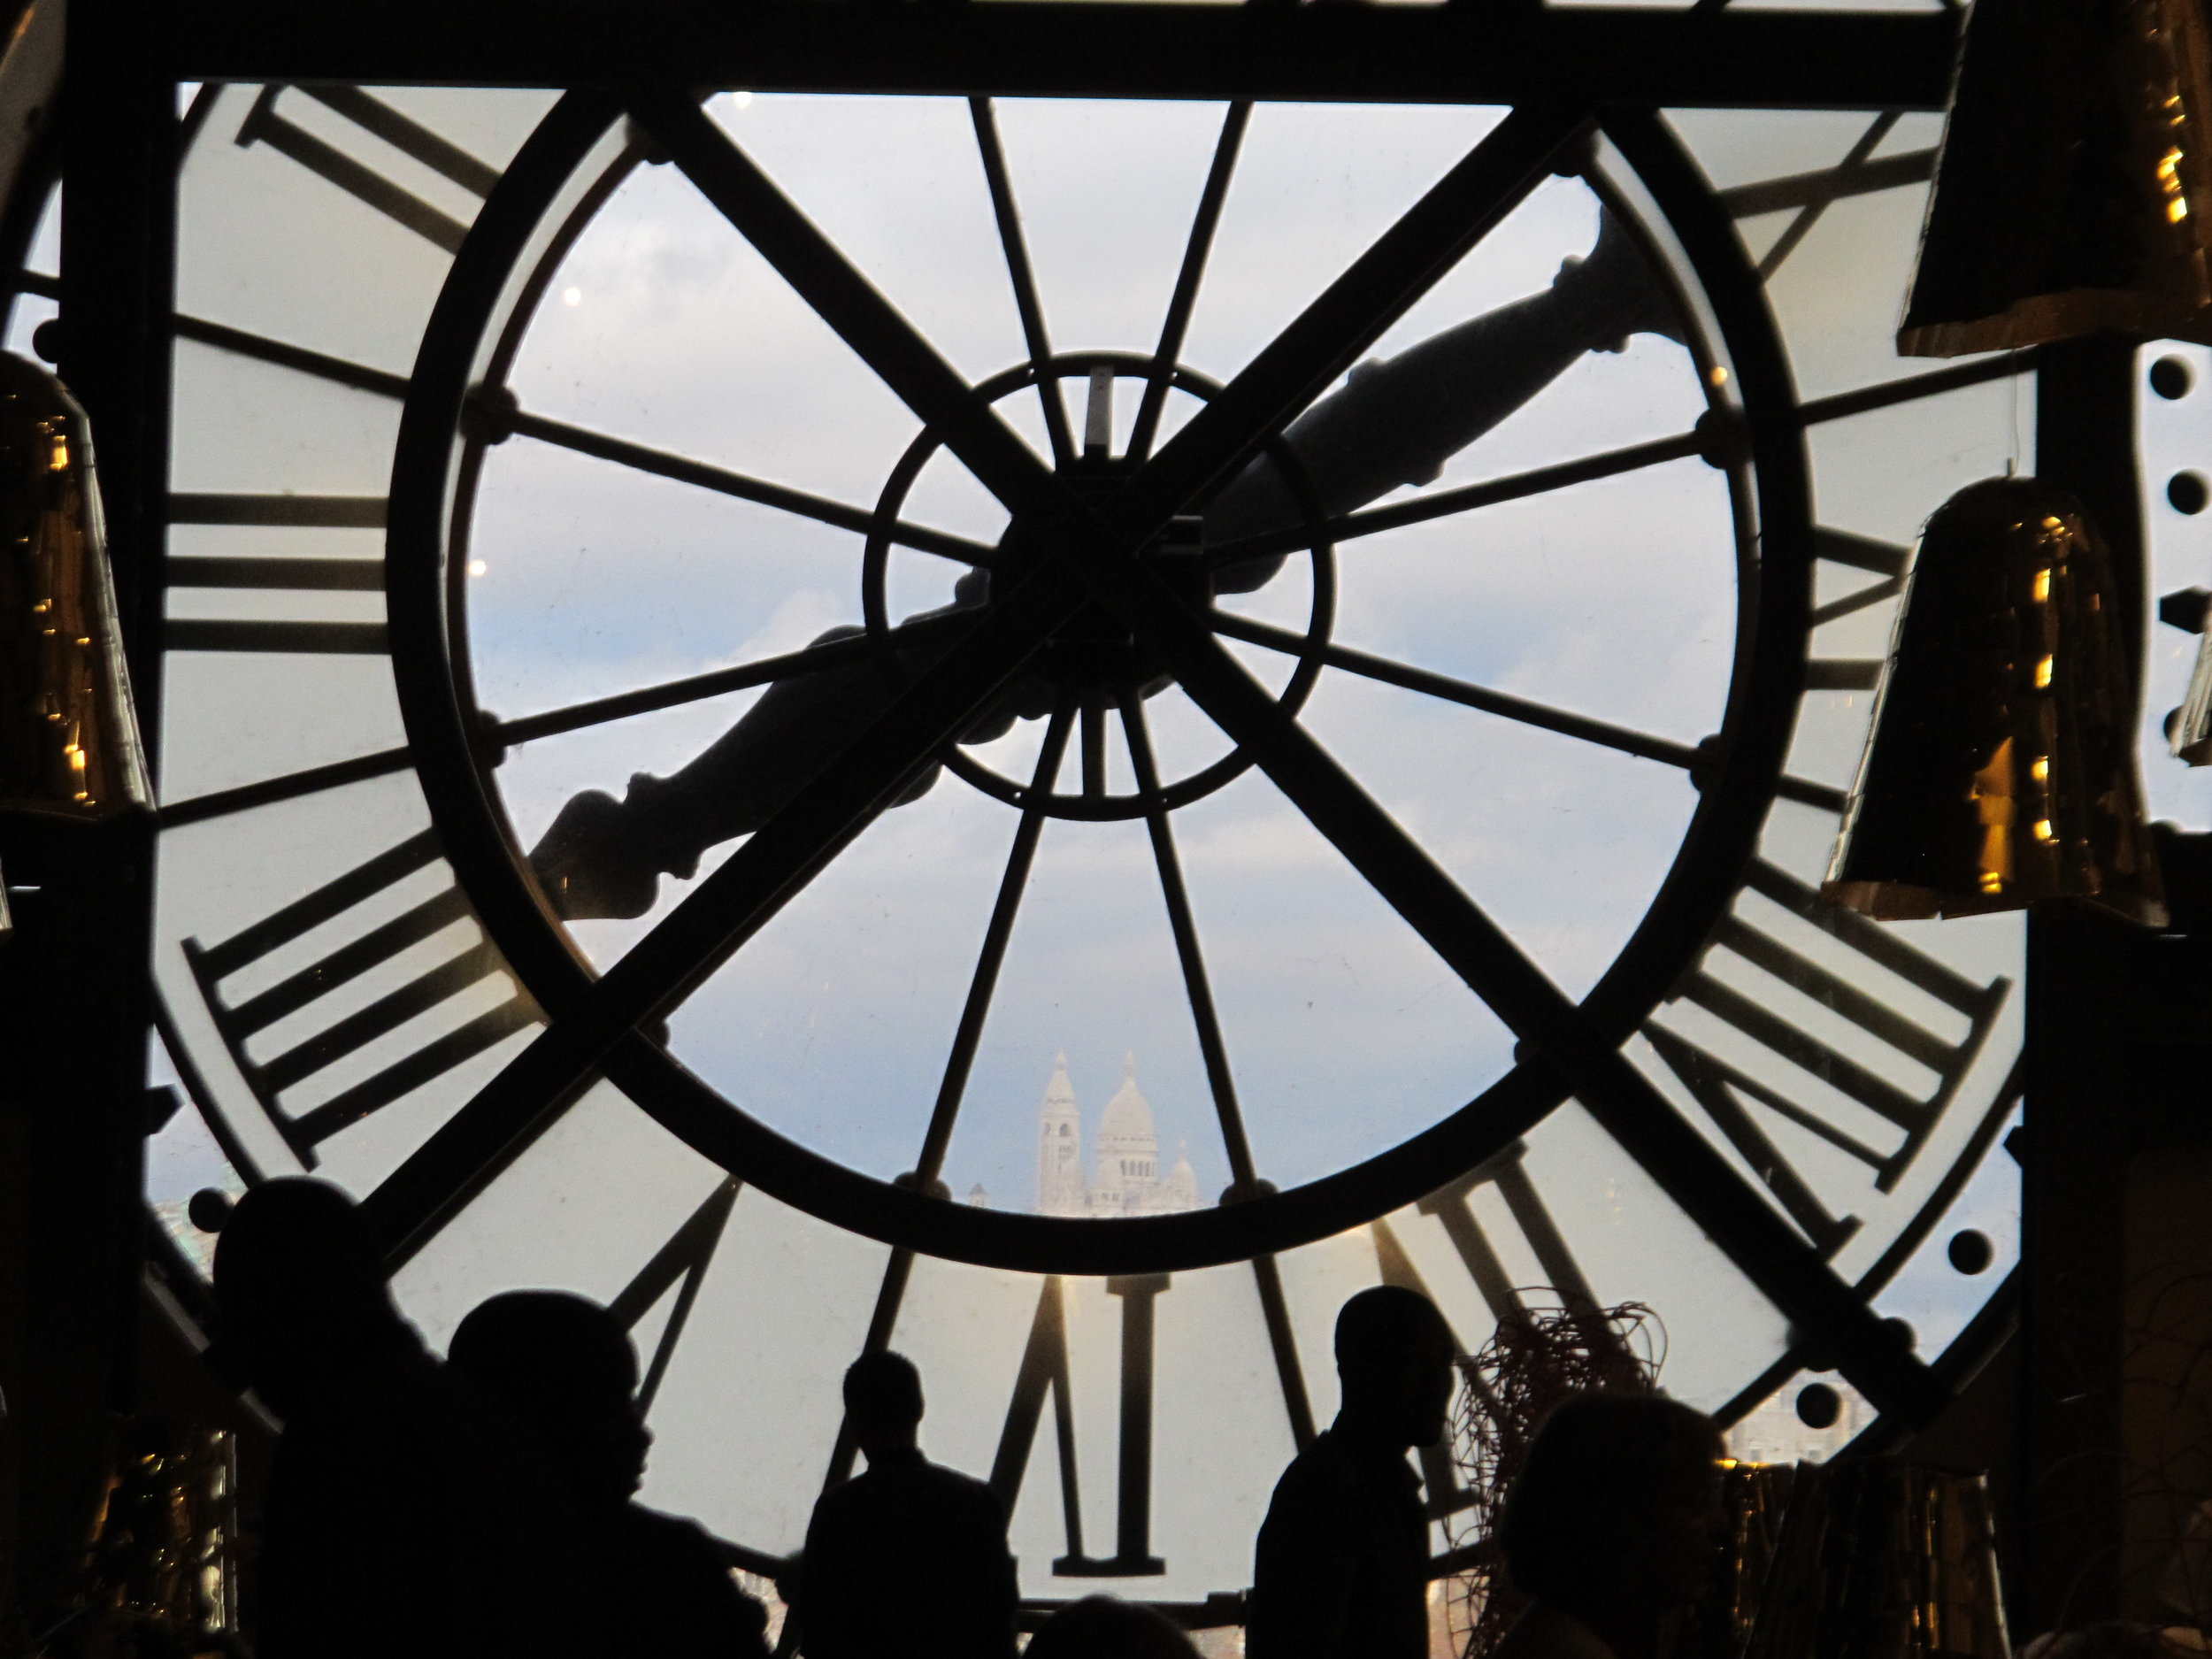 View of  SacréCoeur  in Montmartre from the clock face of the  Musée d'Orsay,  formerly the  Gare d'Orsay  train station. Photo: Elizabeth Kemble